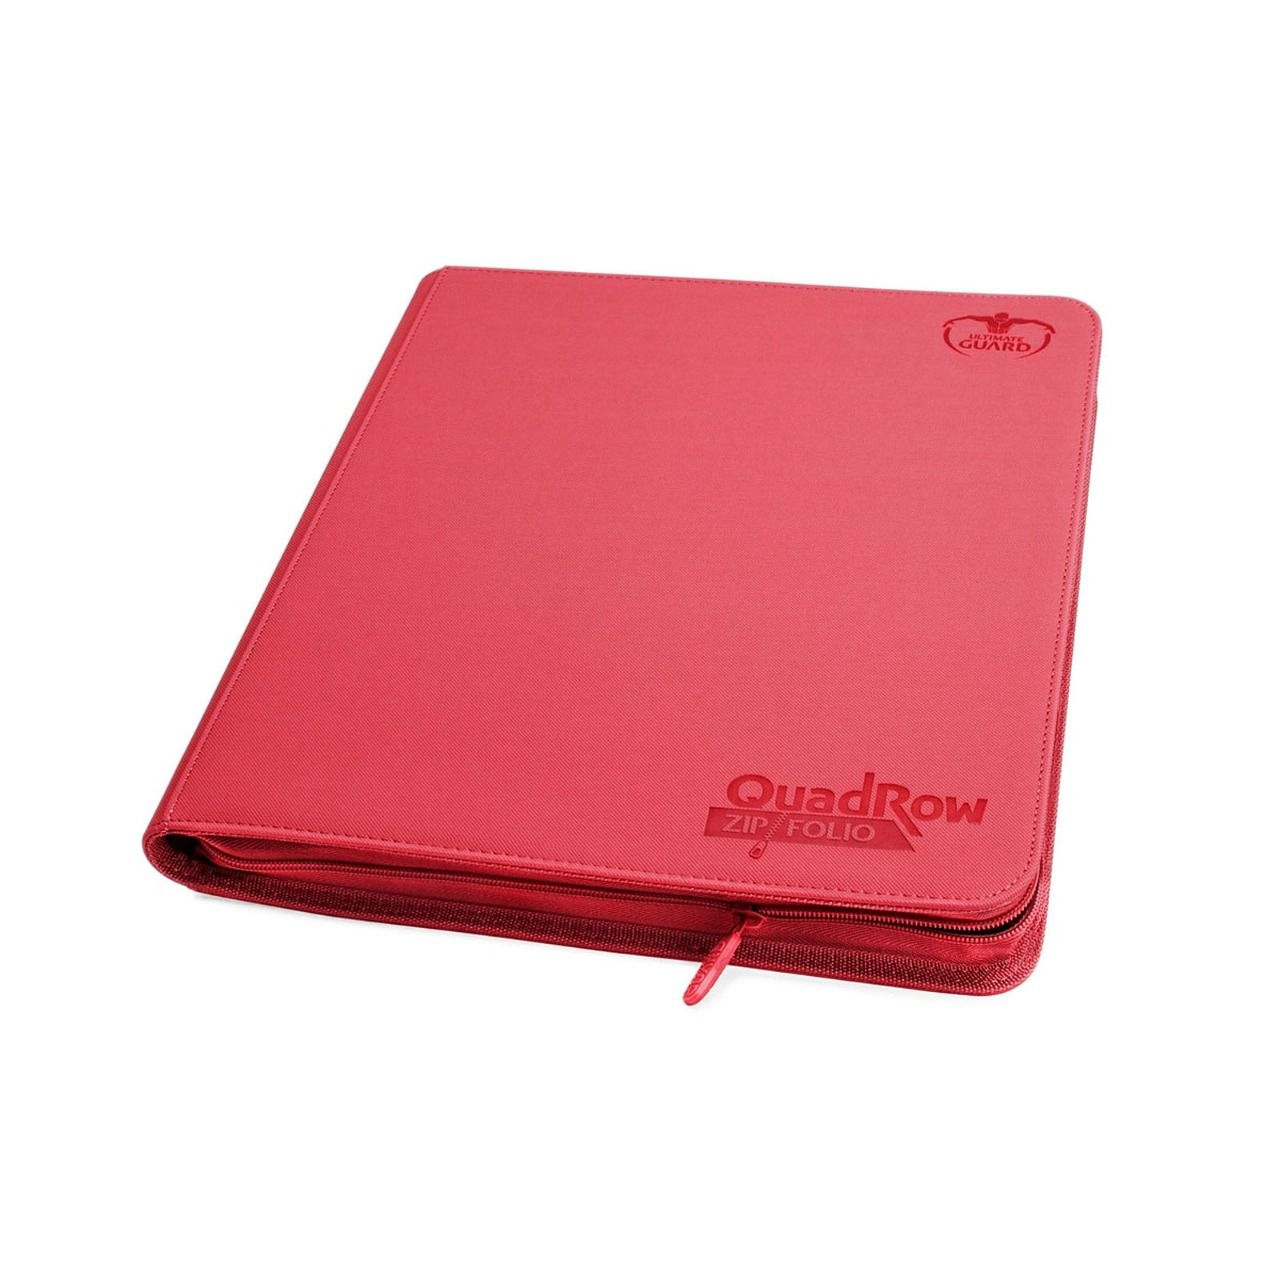 Farde - Binder - Ultimate Guard Quadrow ZipFolio 480 cards - couleur variable